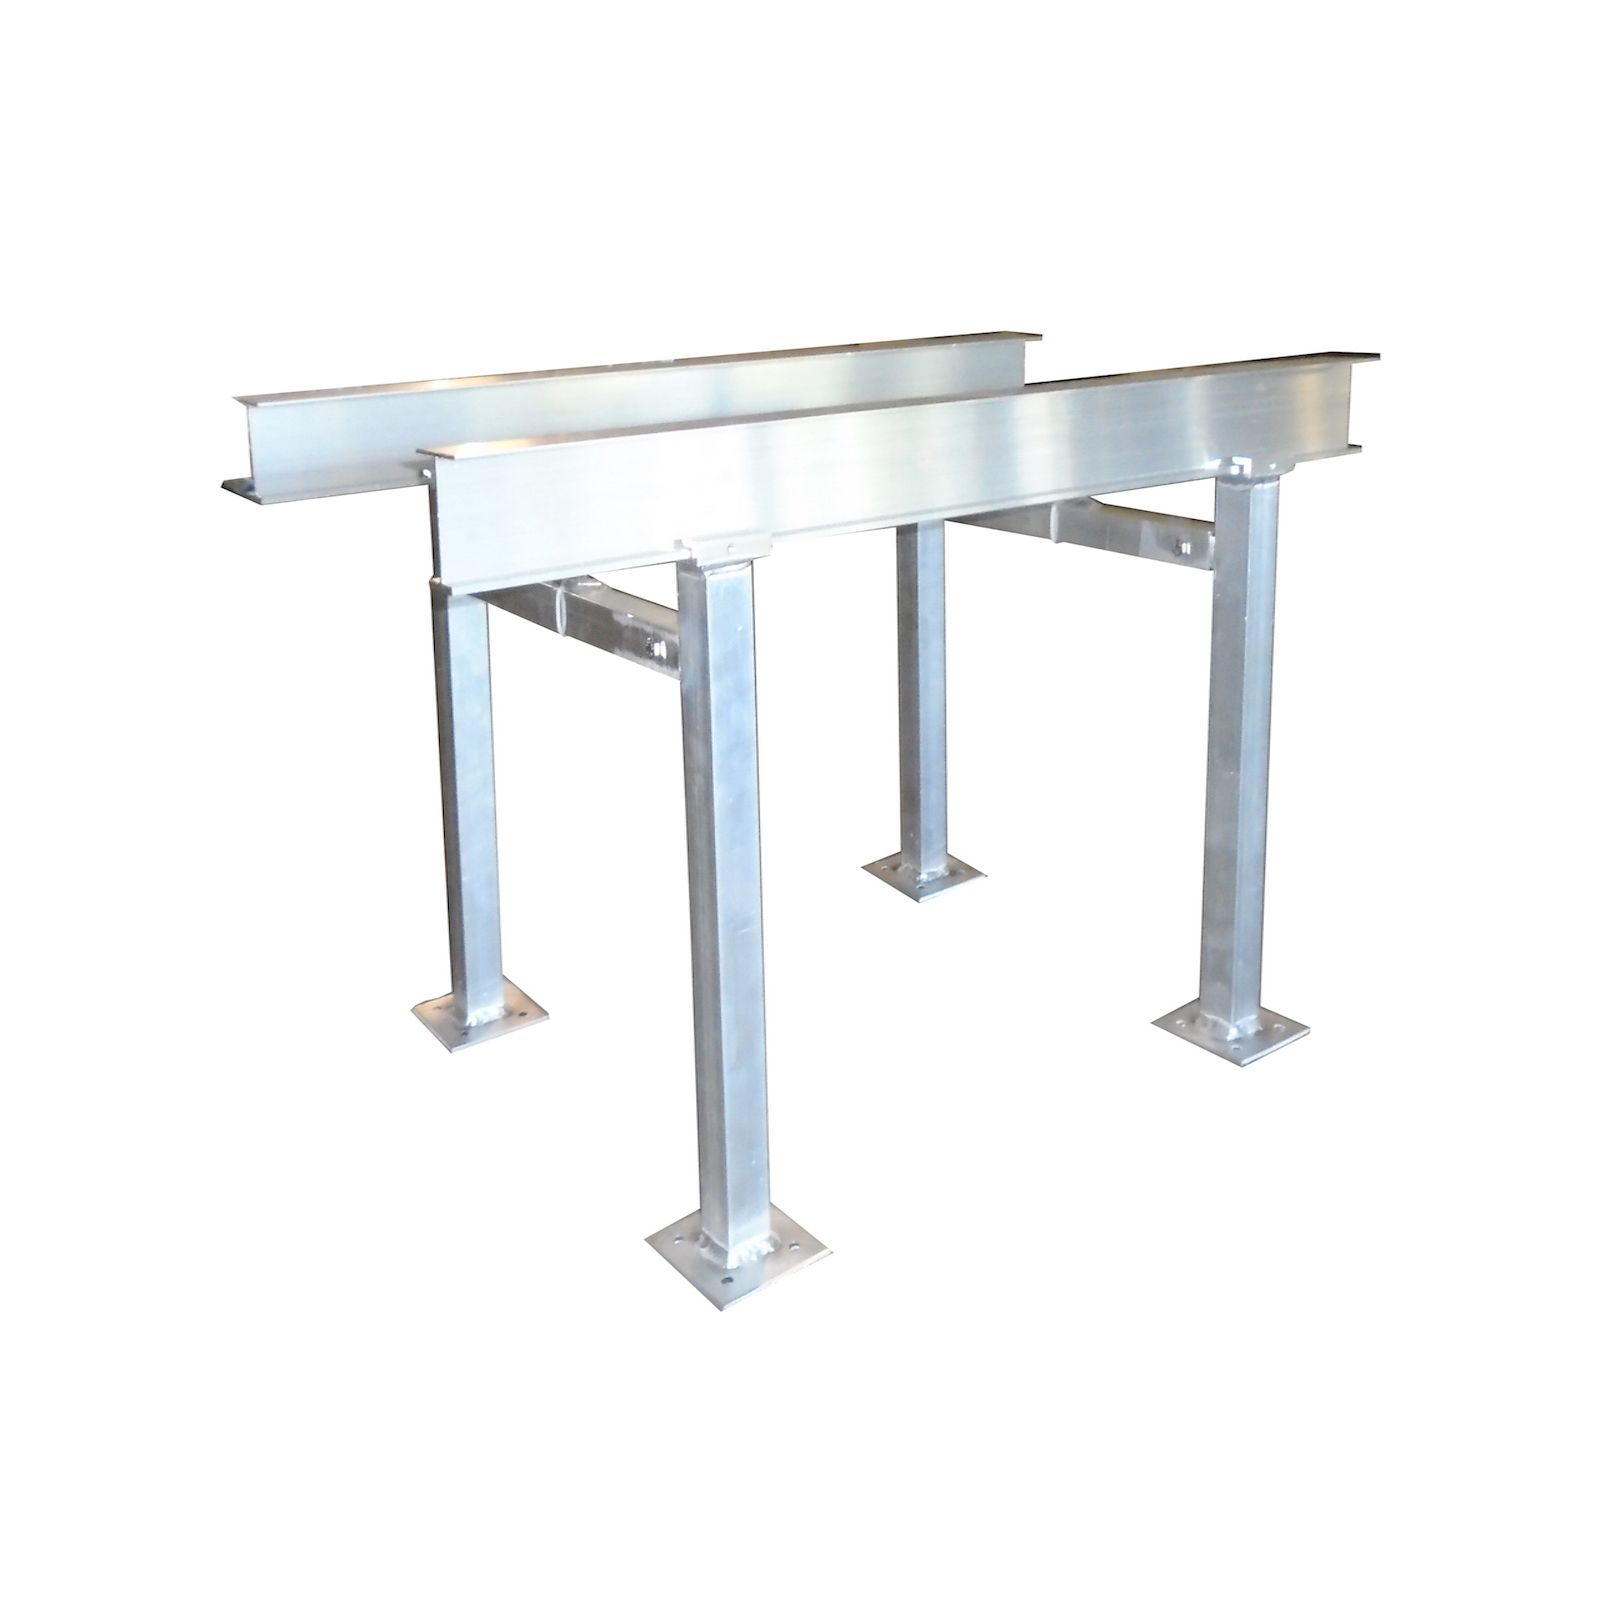 "The Metal Shop 007-606 - #606, Adjustable Aluminum Roof Stand 6' With 24"" Legs"